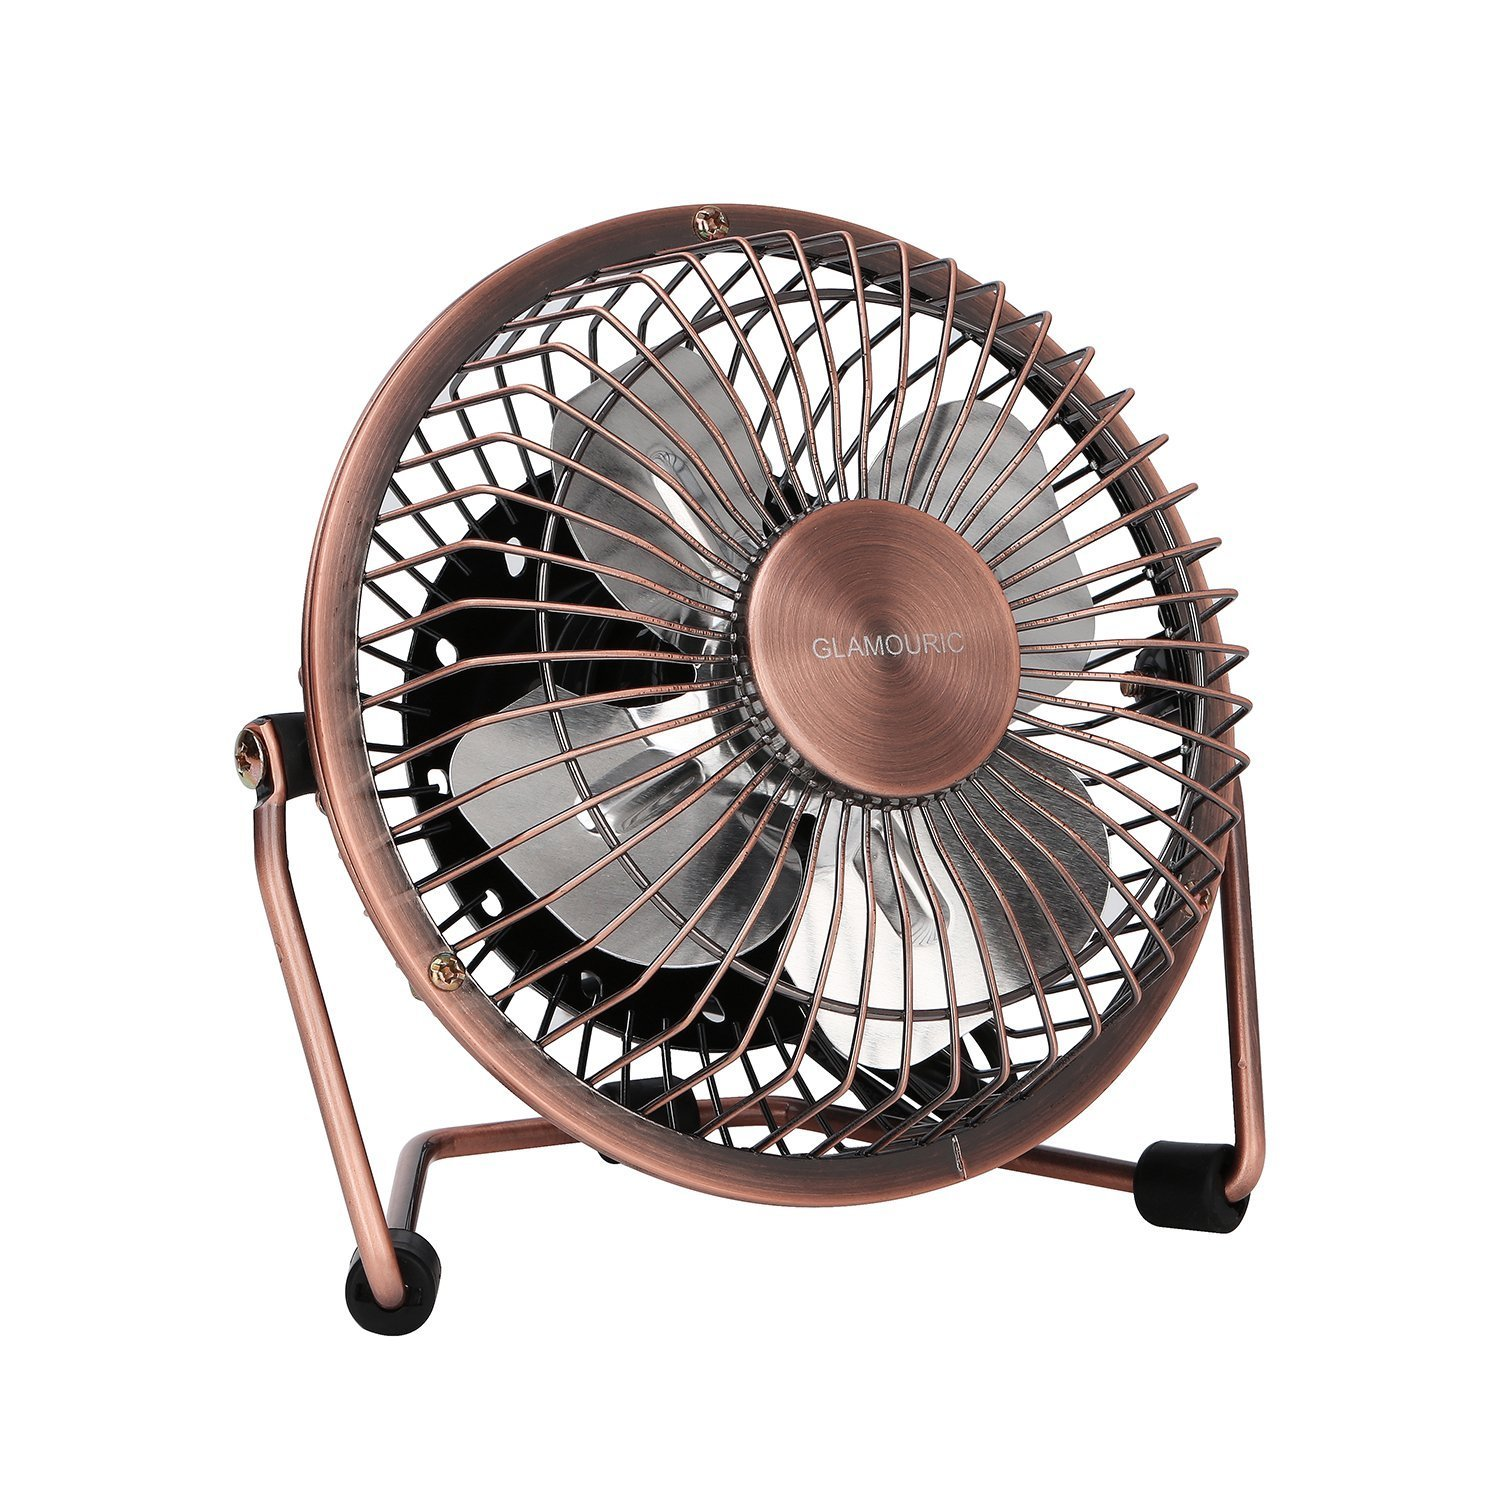 GLAMOURIC Small USB Desk Fan Mini Metal Personal Fan Retro Design Electric Portable Air Circulator Angle Adjustable Quiet Operation for Table Desktop Home Office Travel (Copper) by GLAMOURIC (Image #1)